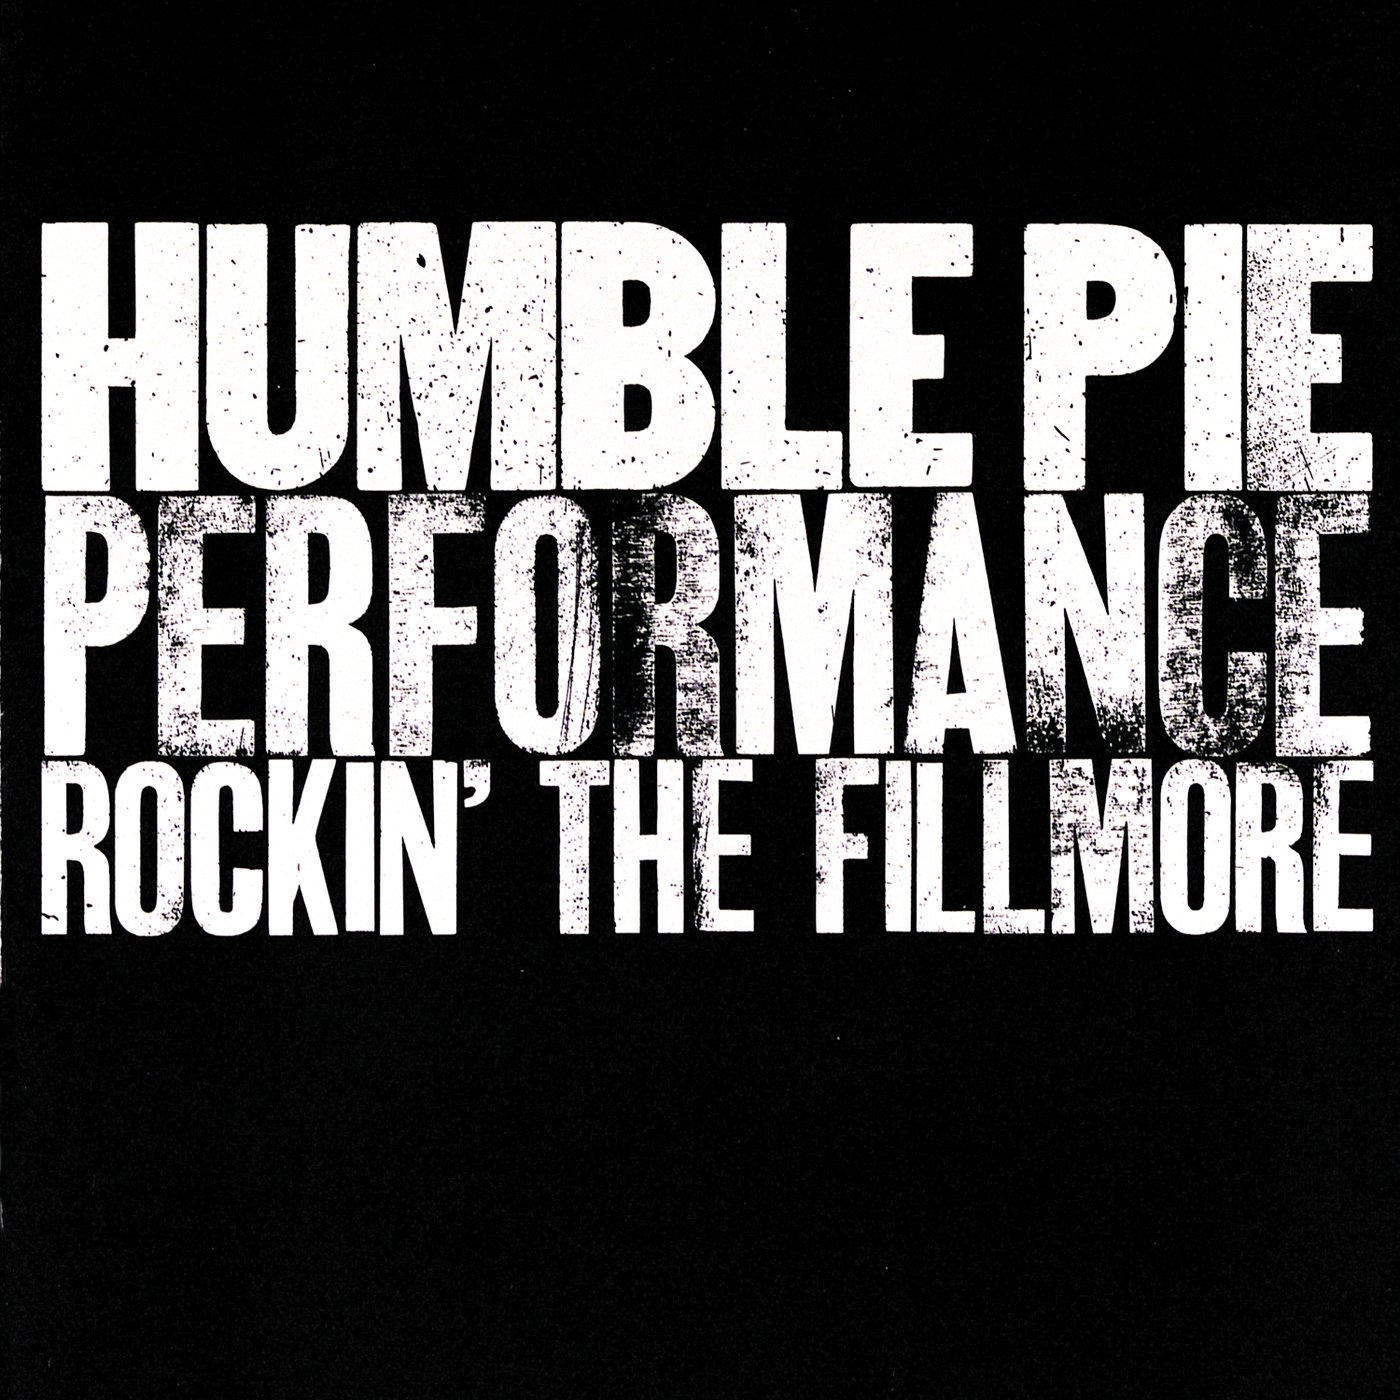 Humble Pie performance: Rockin' the Fillmore by HUMBLE PIE